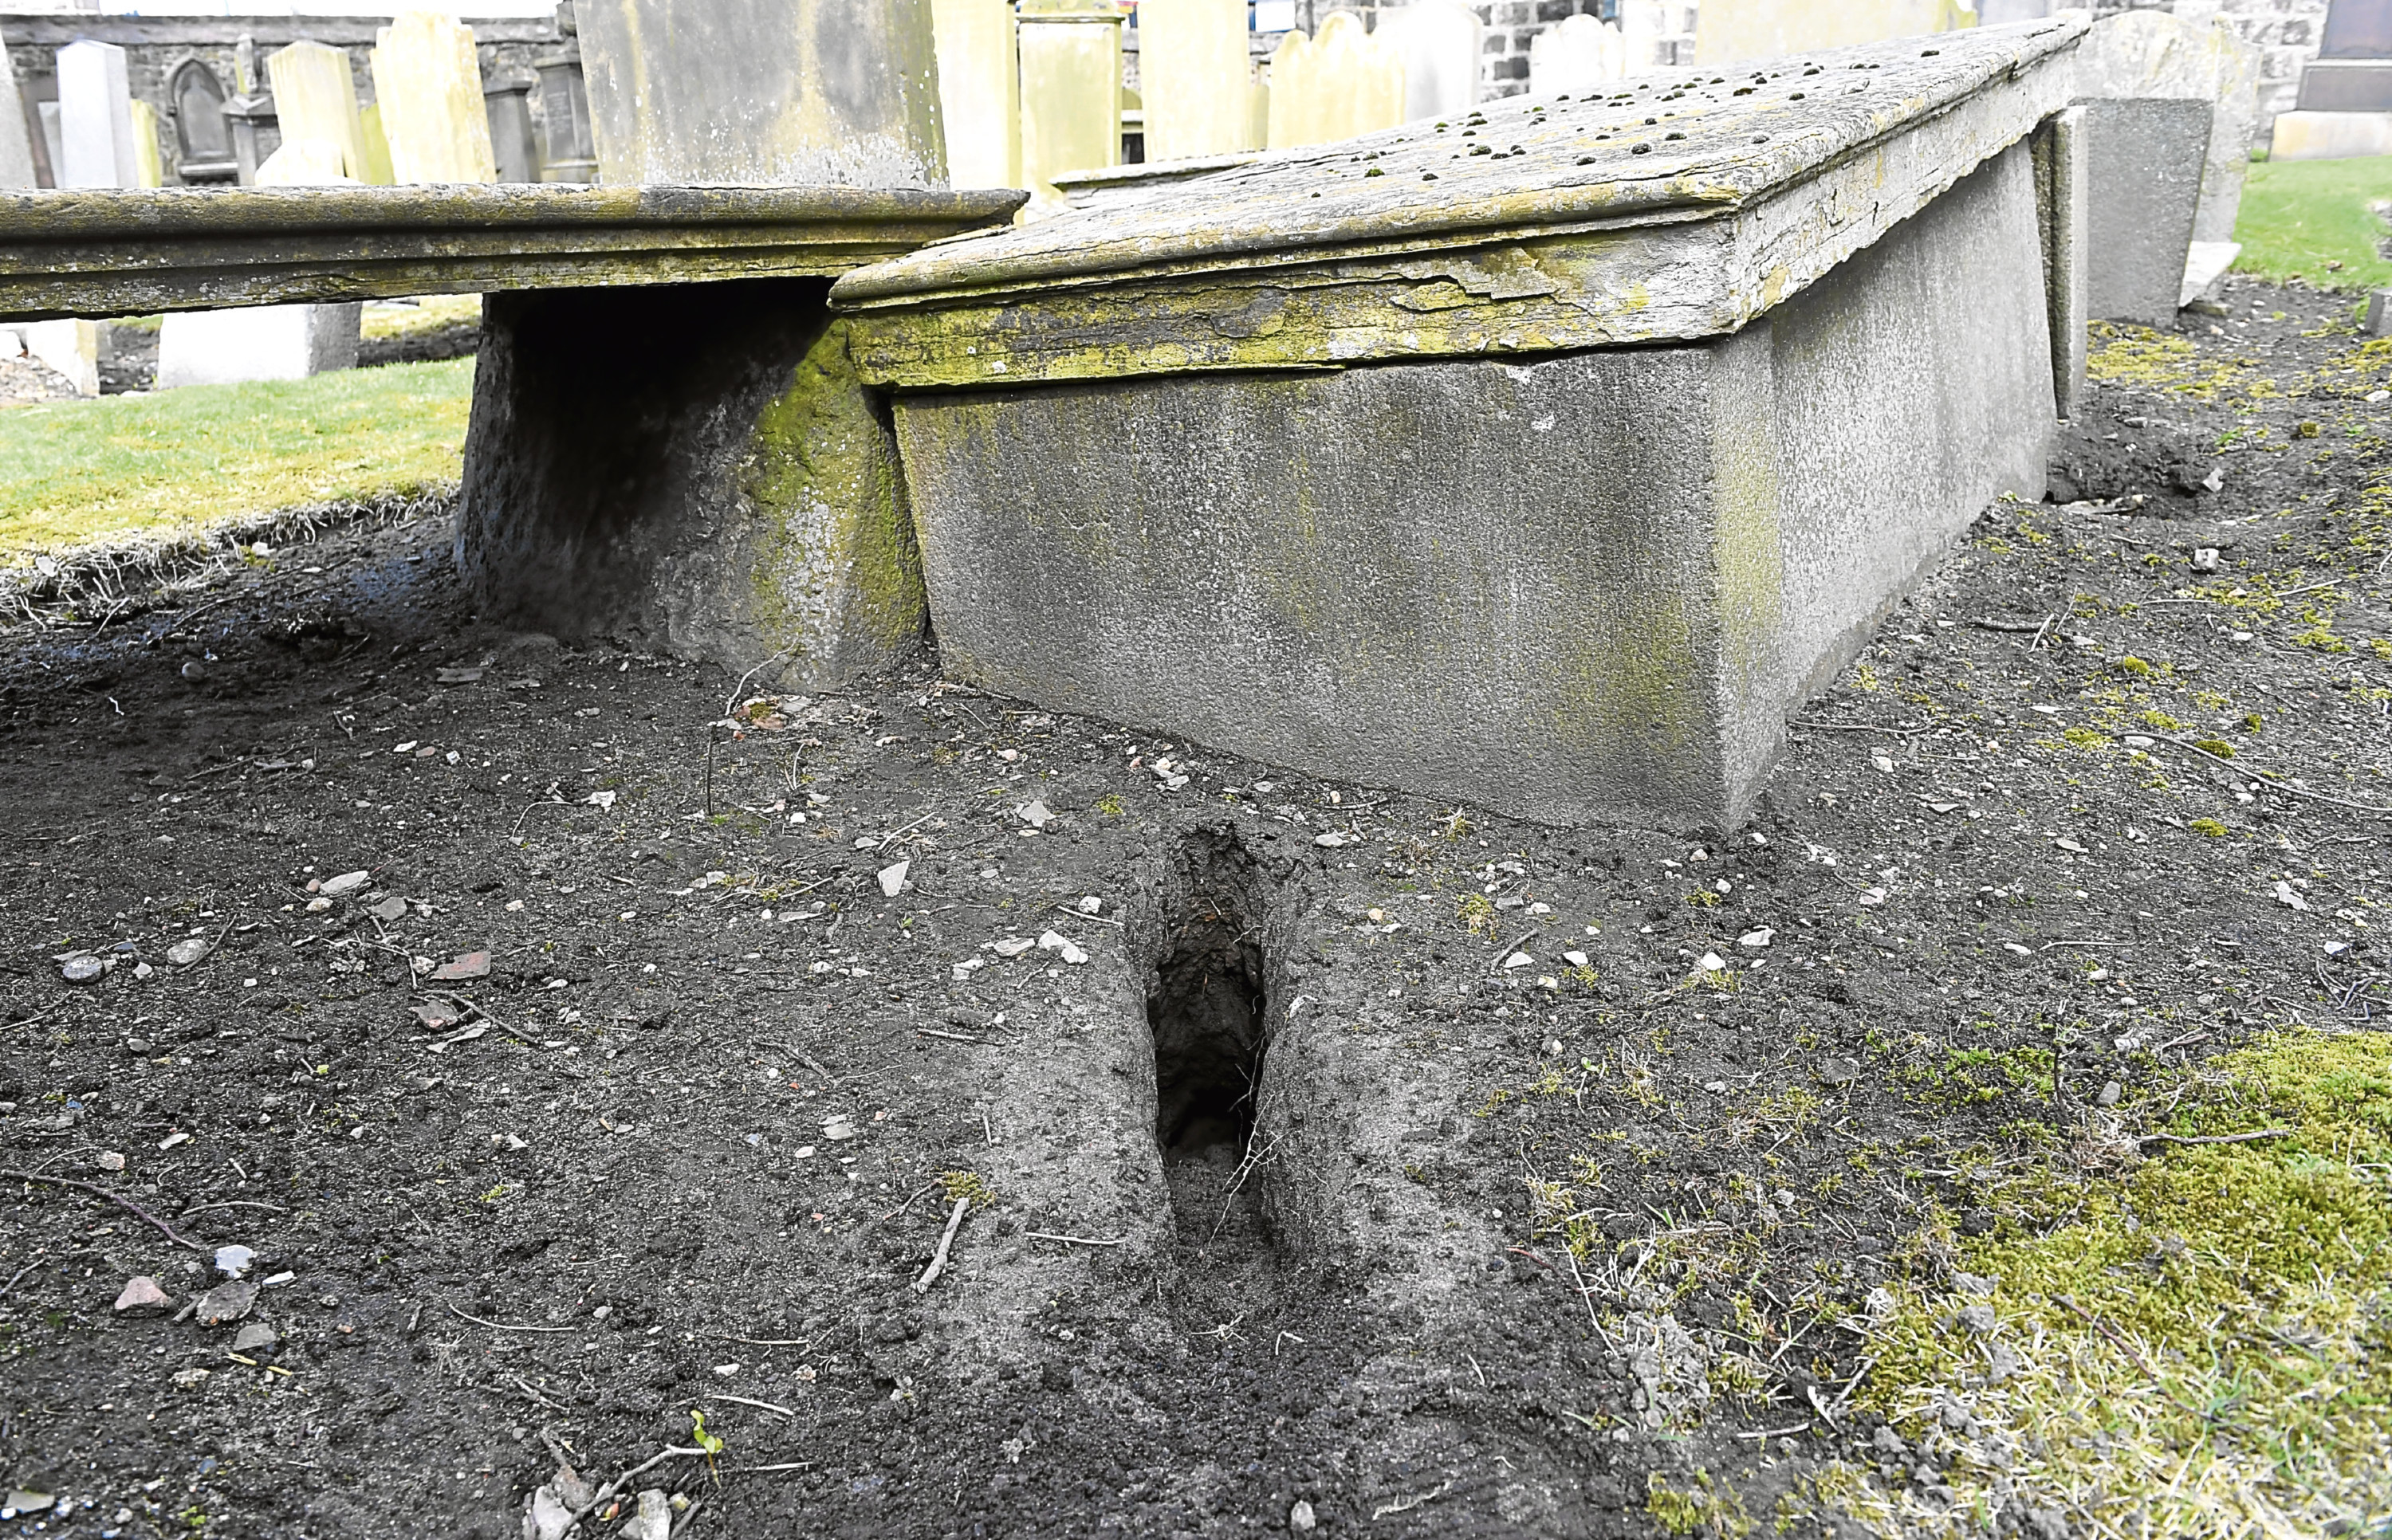 Rabbits are thought to have dug up remains at East St Clements Church